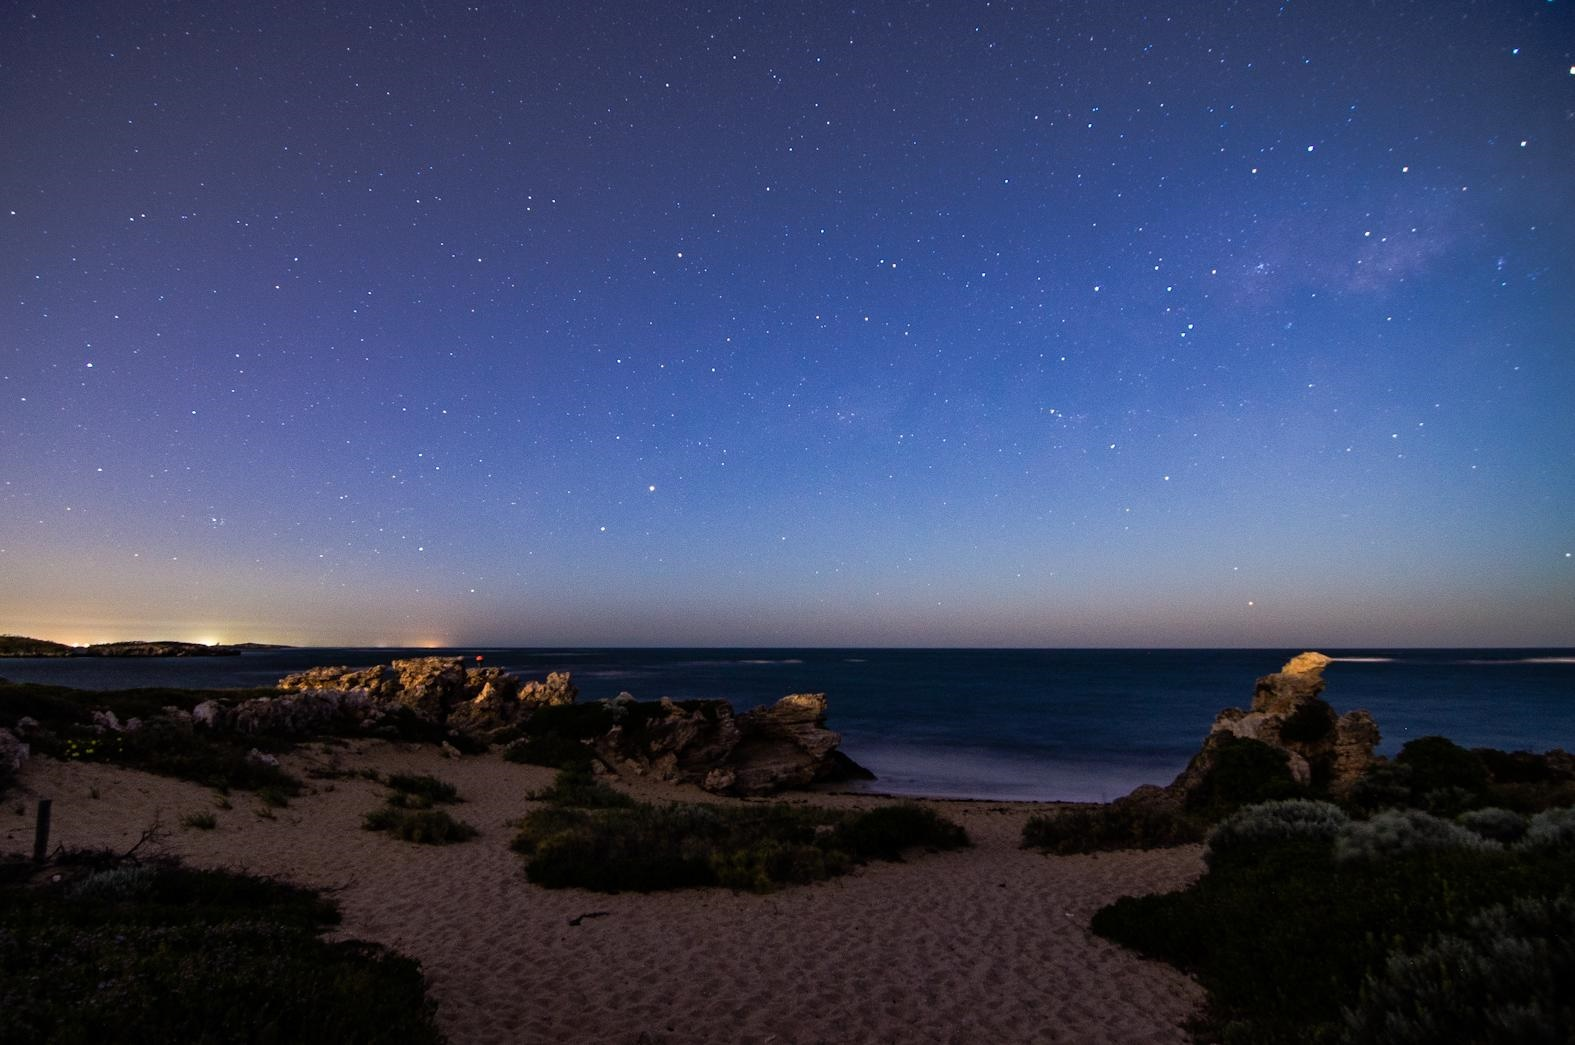 a beach at twilight or dawn where you can count the stars in the sky